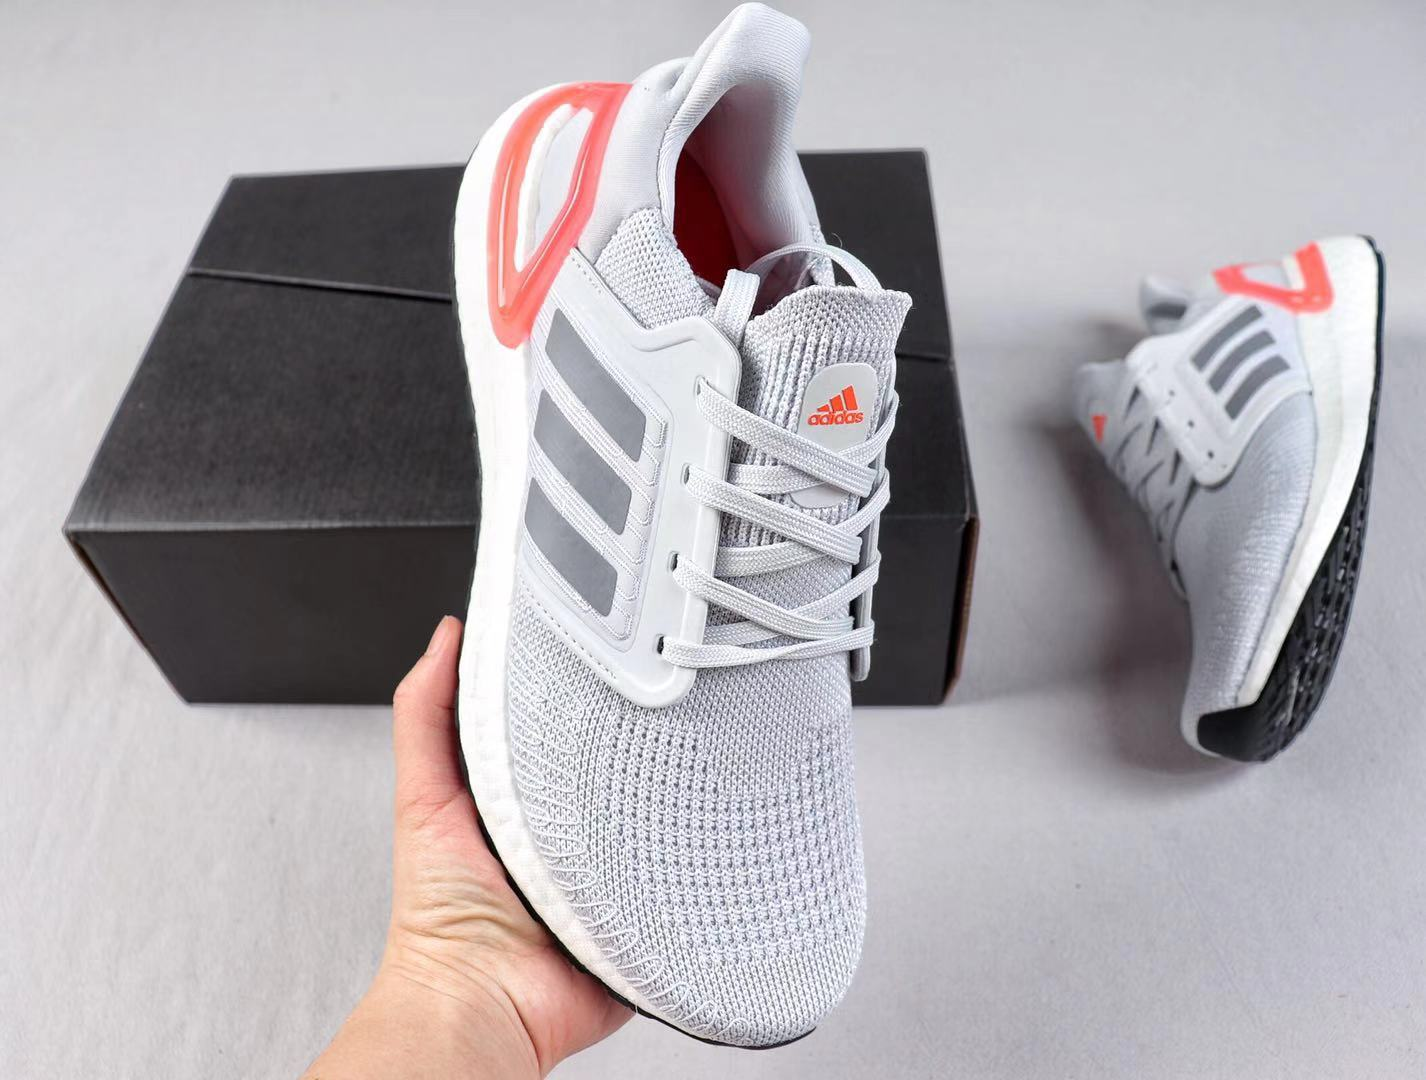 Adidas Ultra Boost 19 Wolf Grey/Orange Newest Sneakers For Sale EG0704